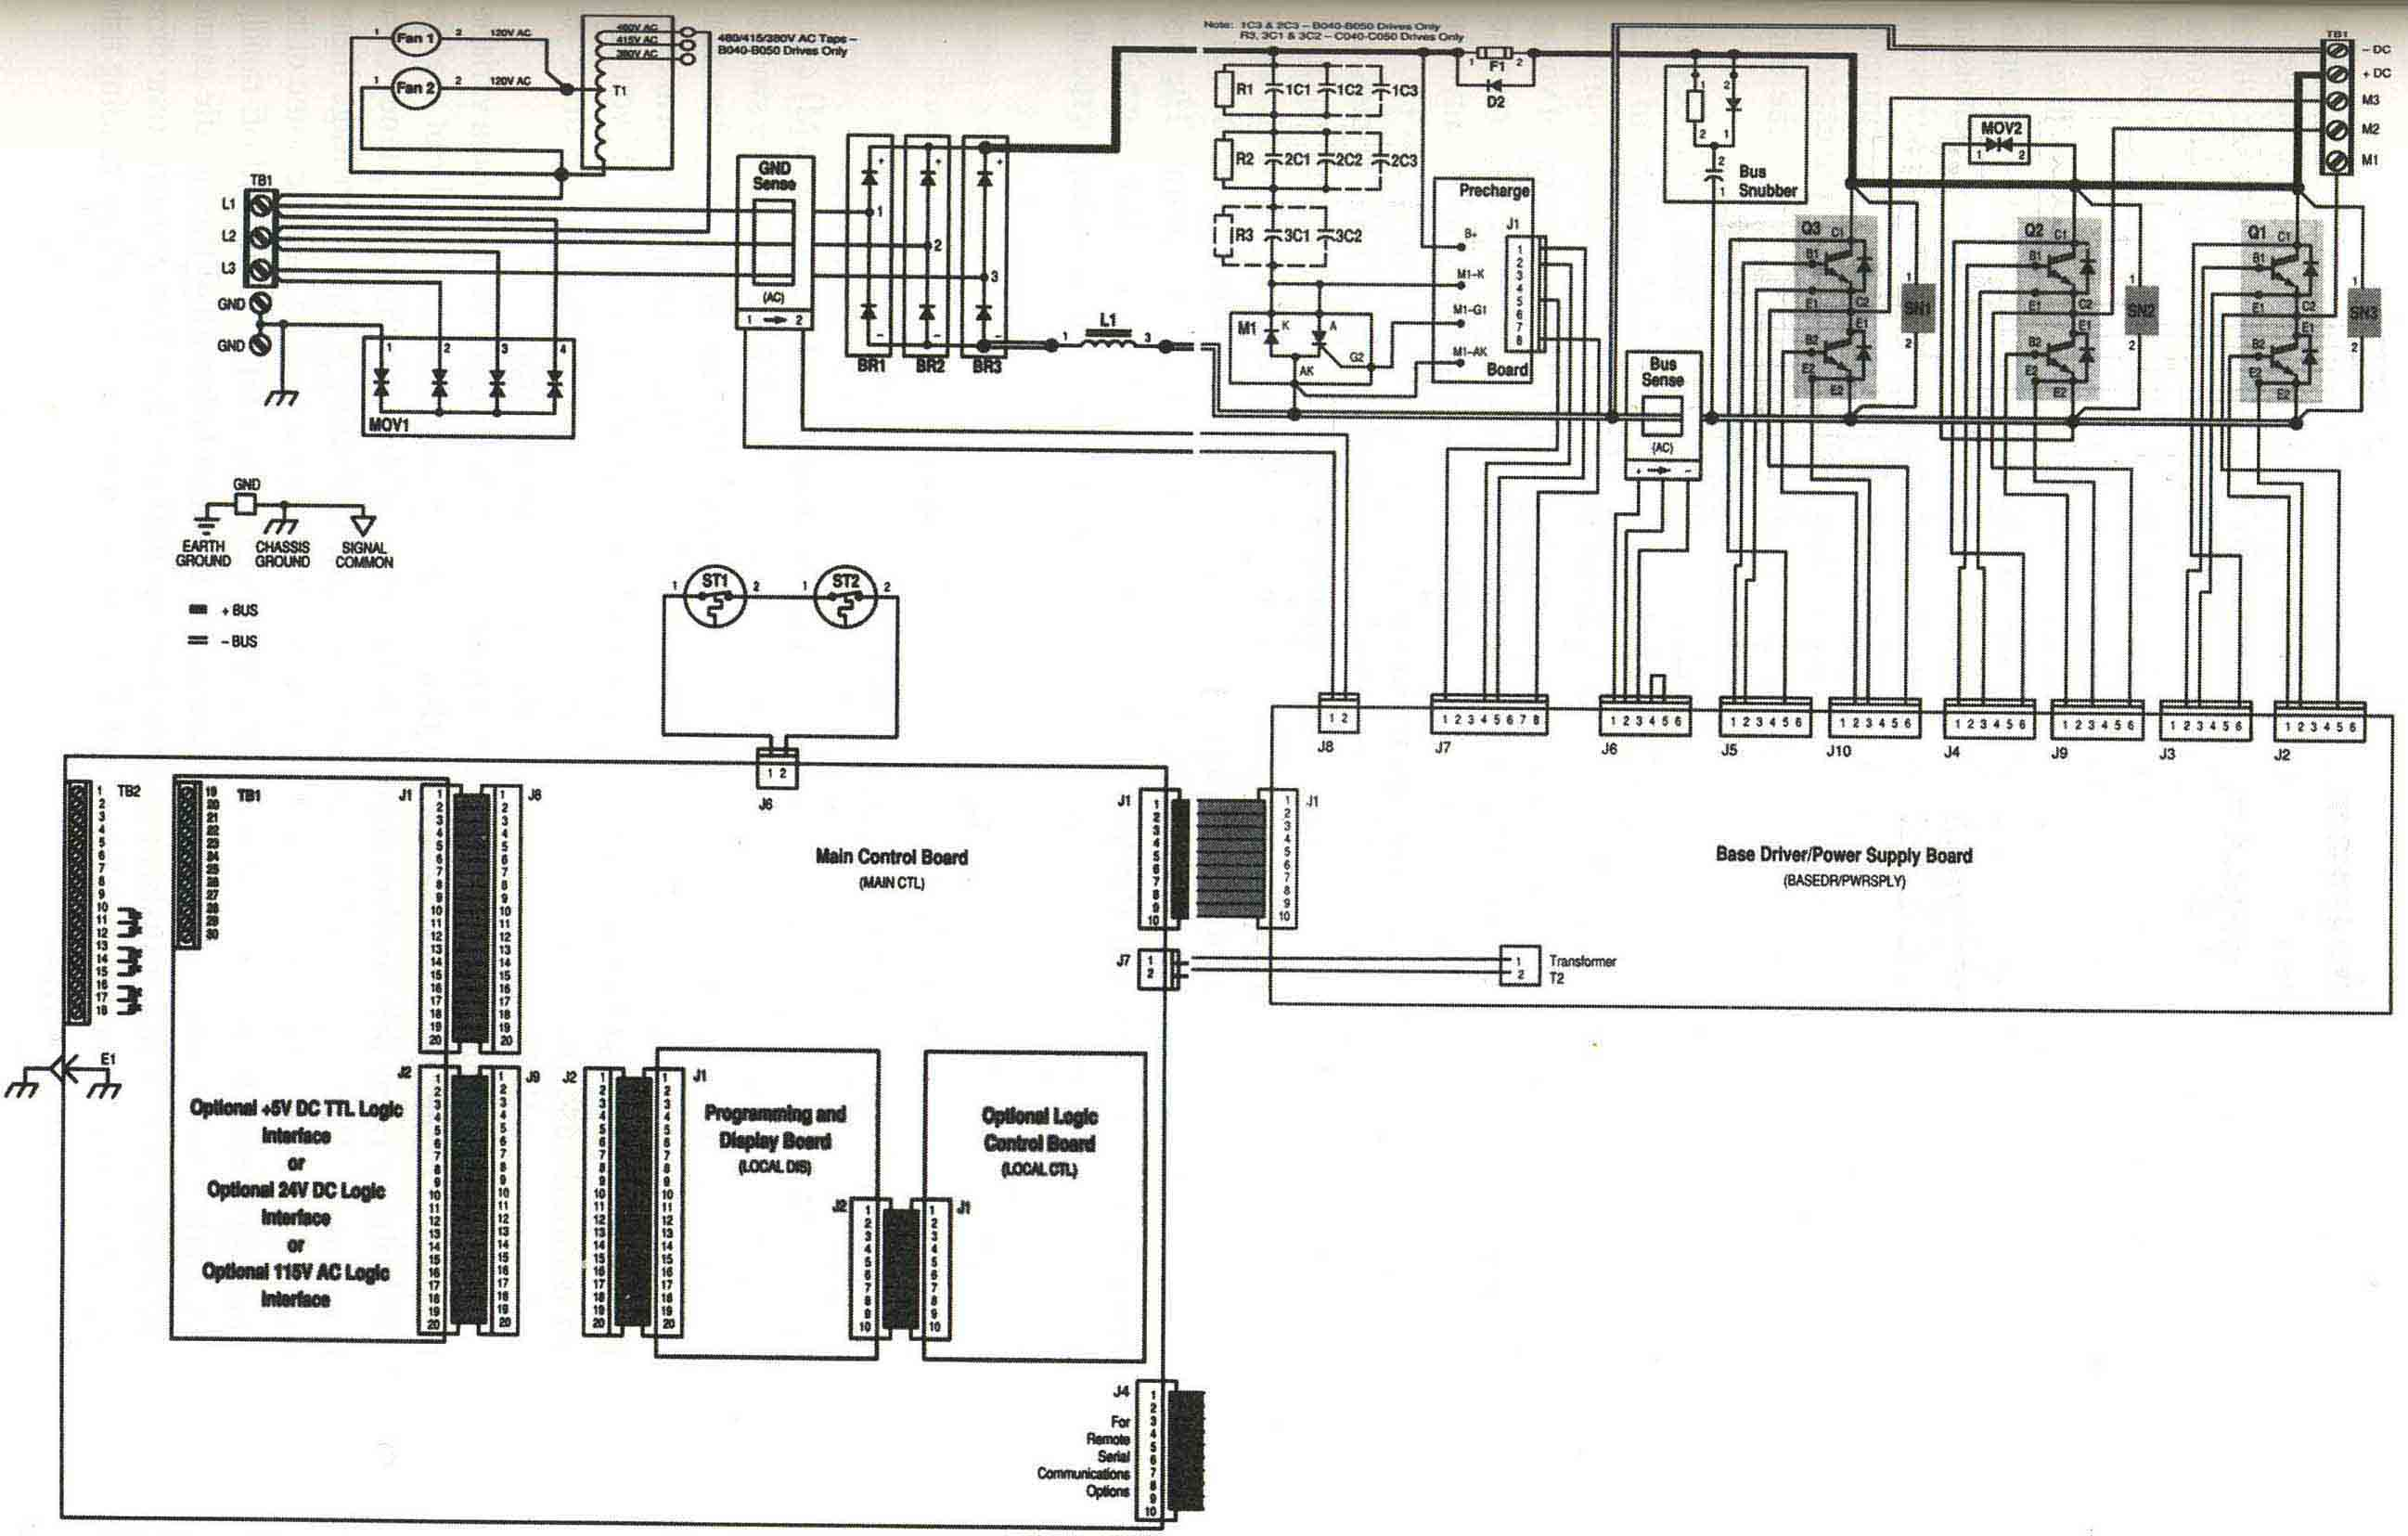 Allen Bradley 1336 schematic 100 [ variac transformer wiring diagram ] possible 2002 variac wiring diagram at bayanpartner.co